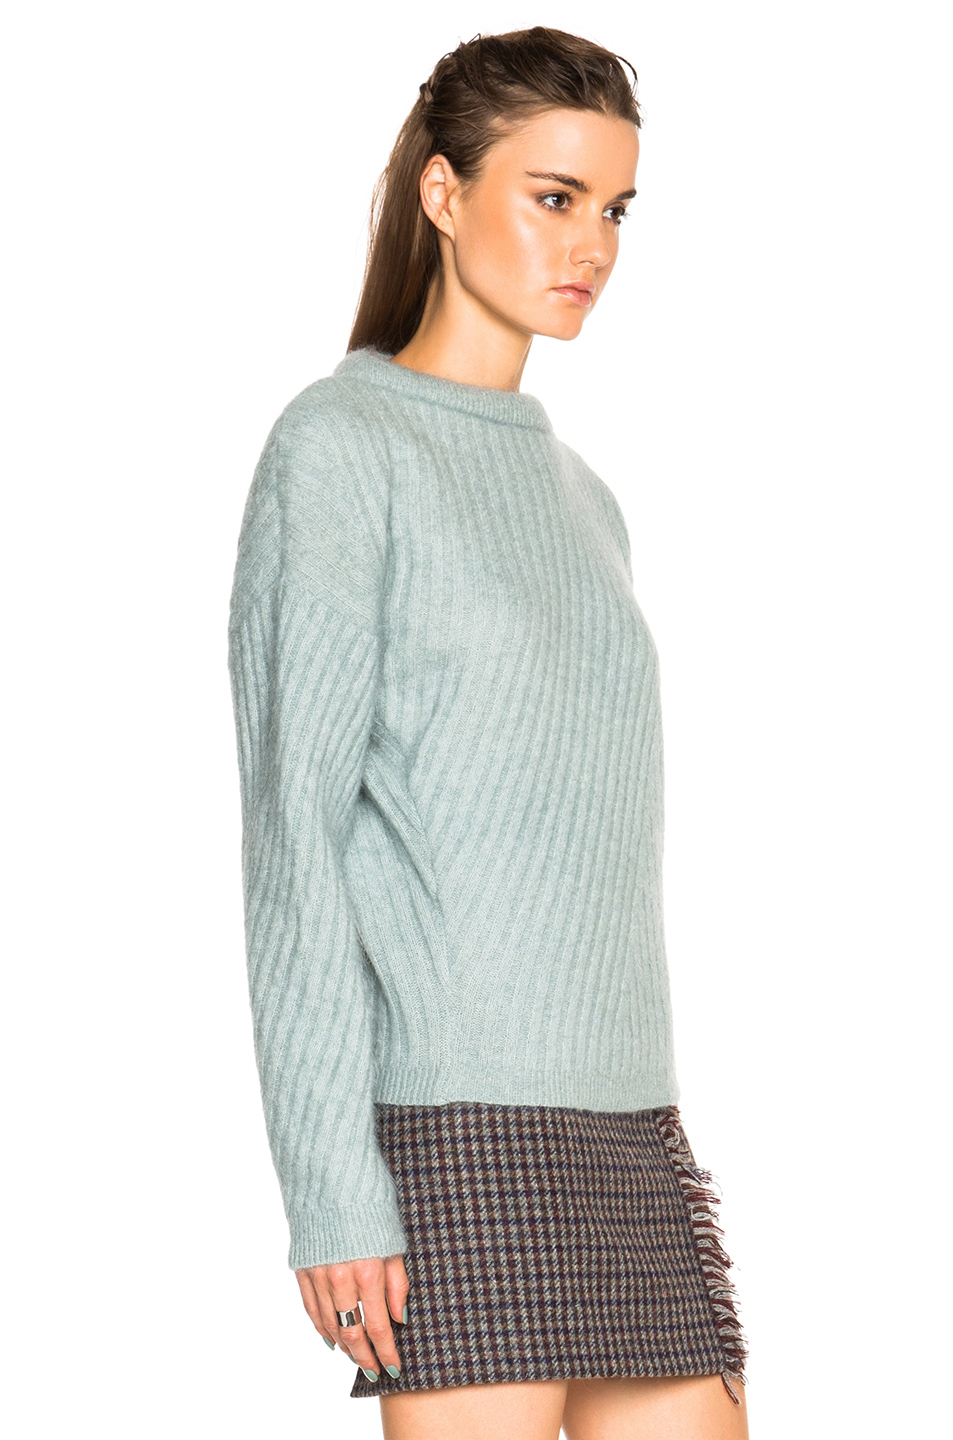 lyst acne studios virdis mohair sweater in green. Black Bedroom Furniture Sets. Home Design Ideas